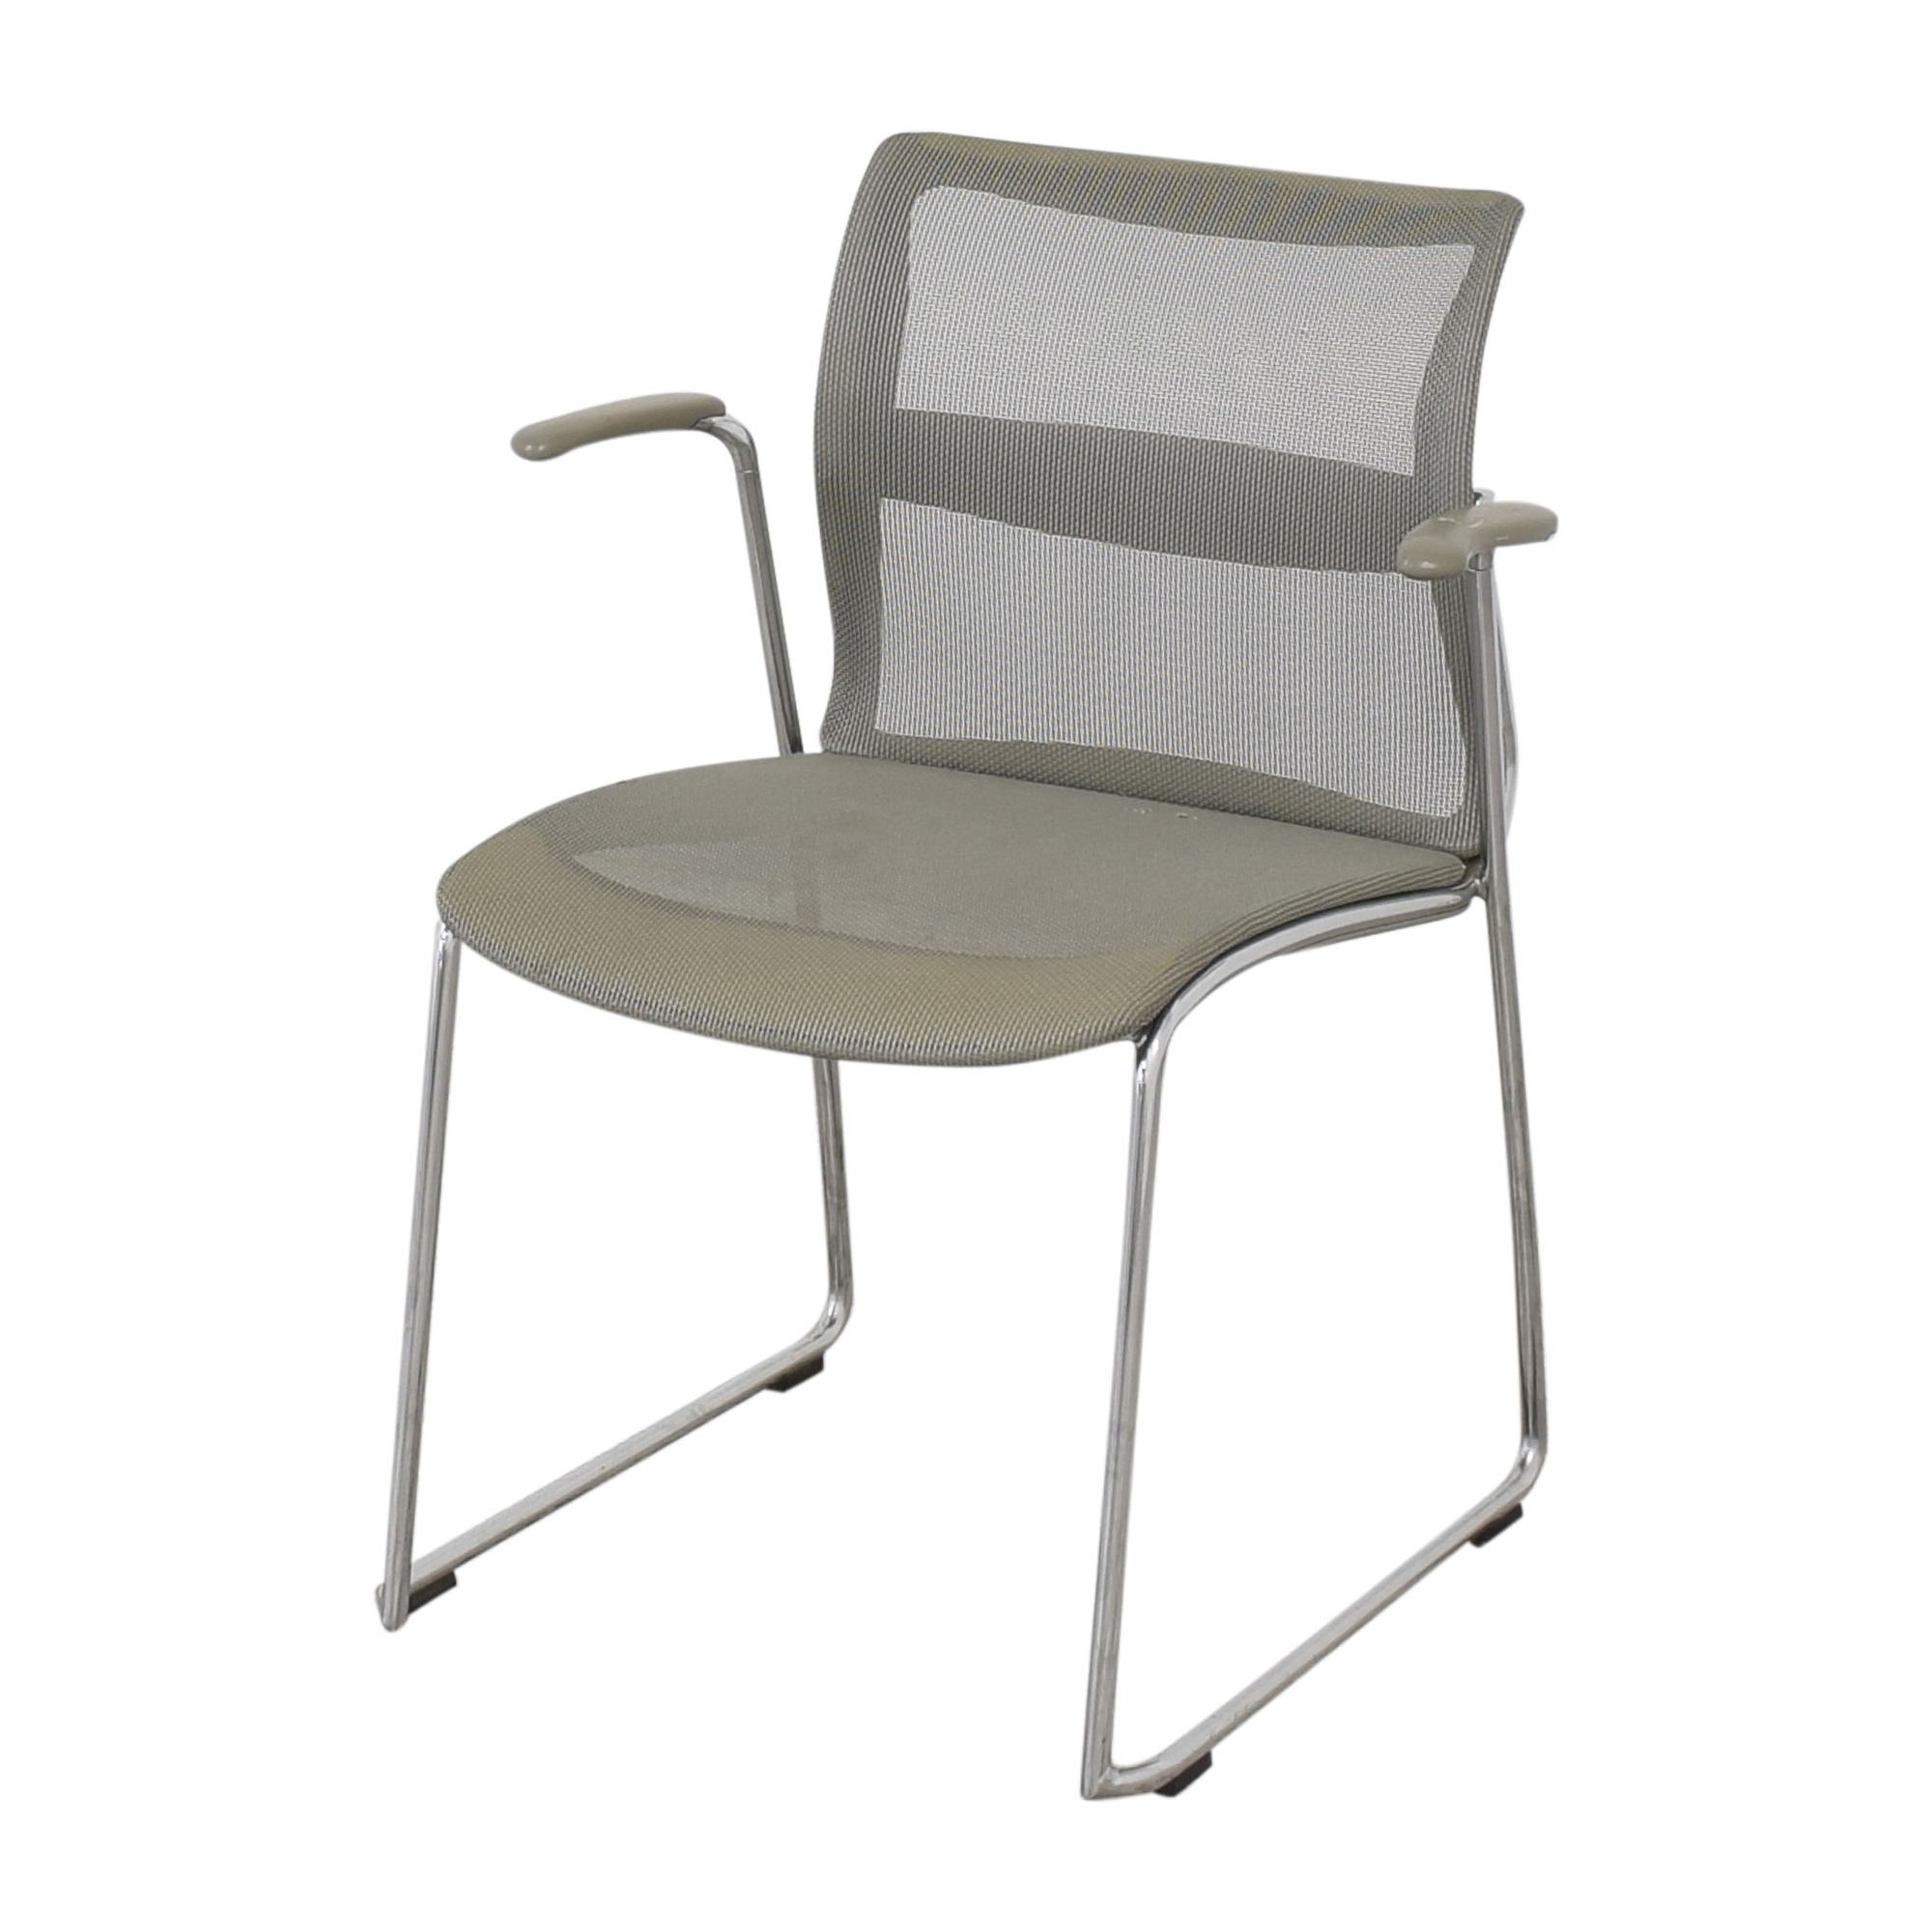 Stylex Stylex Zephyr Stacking Arm Chair Chairs